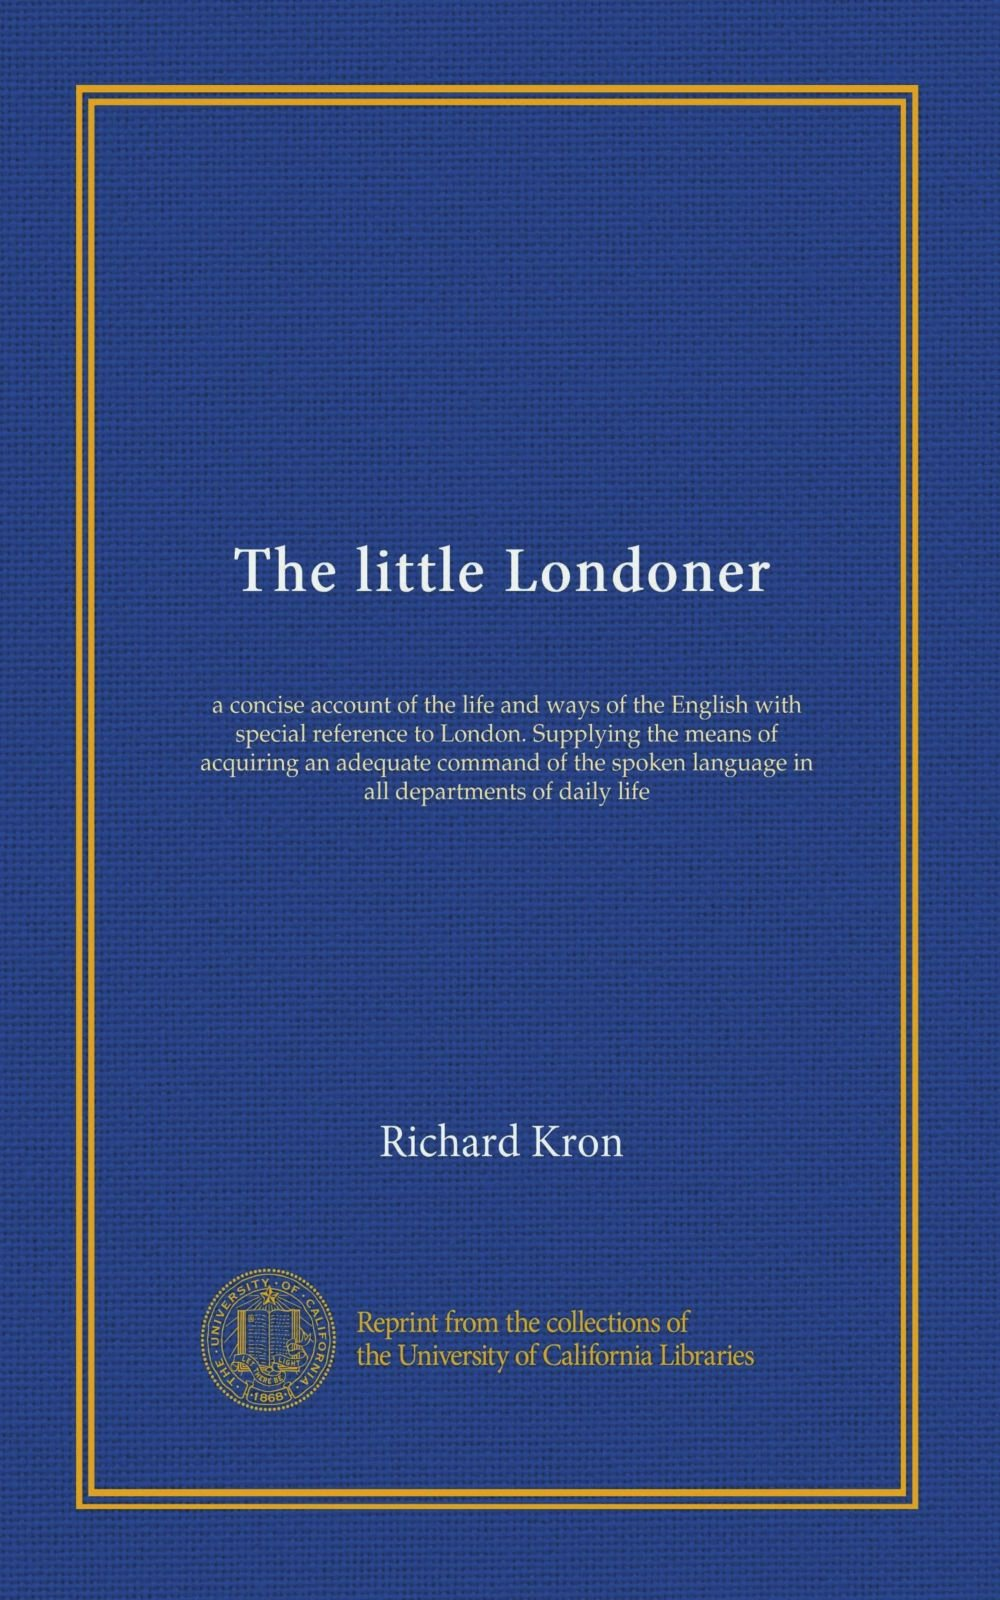 The little Londoner: a concise account of the life and ways of the English with special reference to London. Supplying the means of acquiring an ... language in all departments of daily life